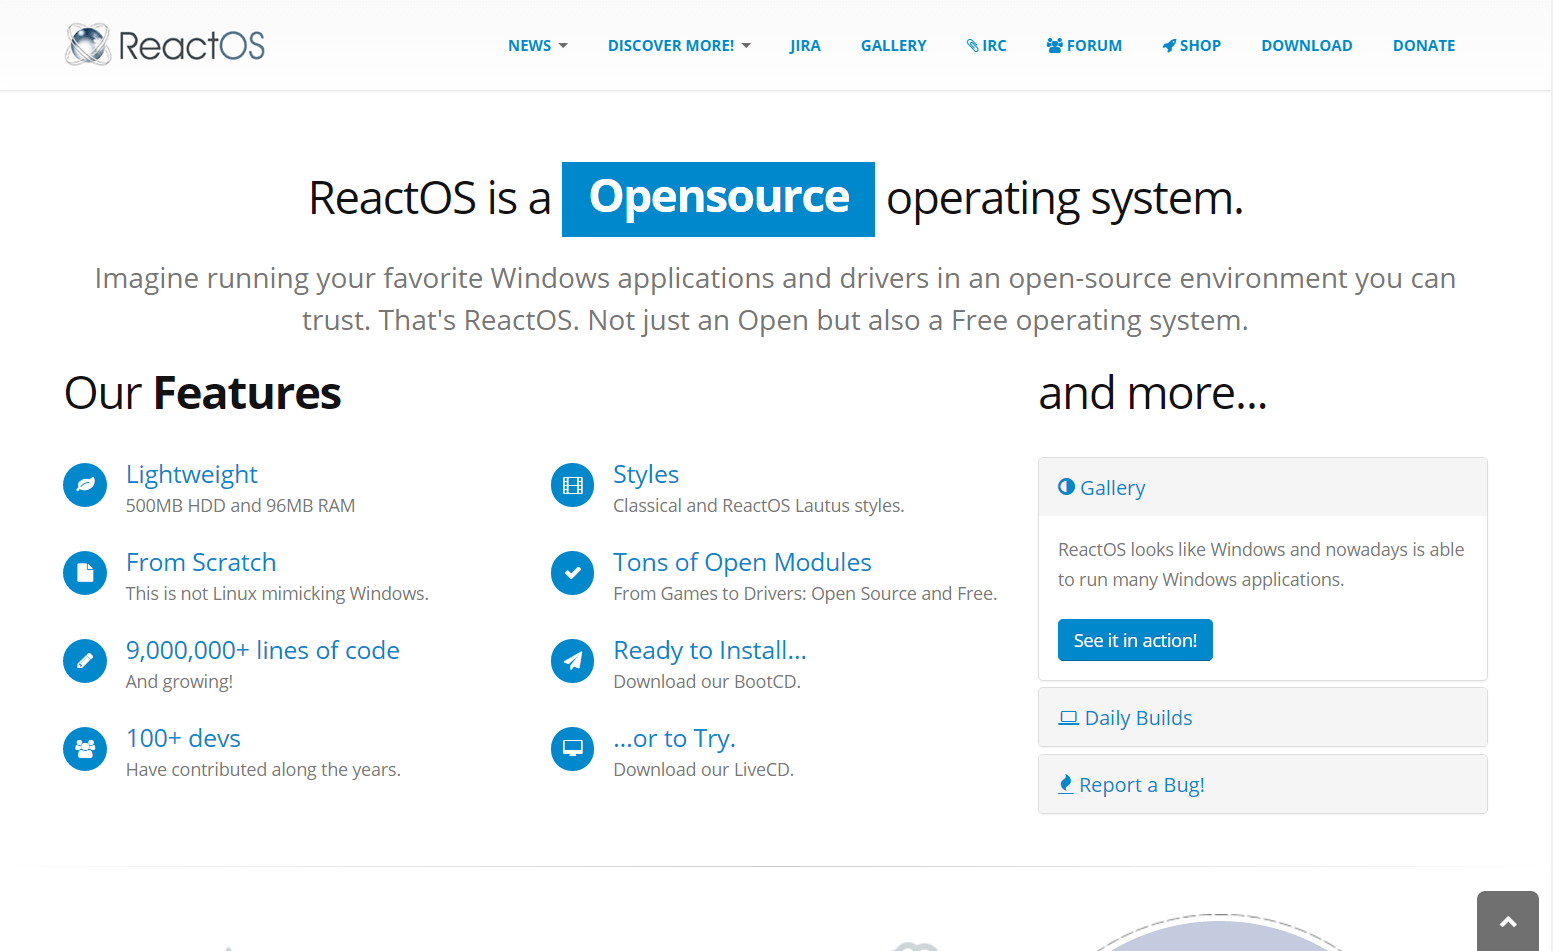 reactos_features